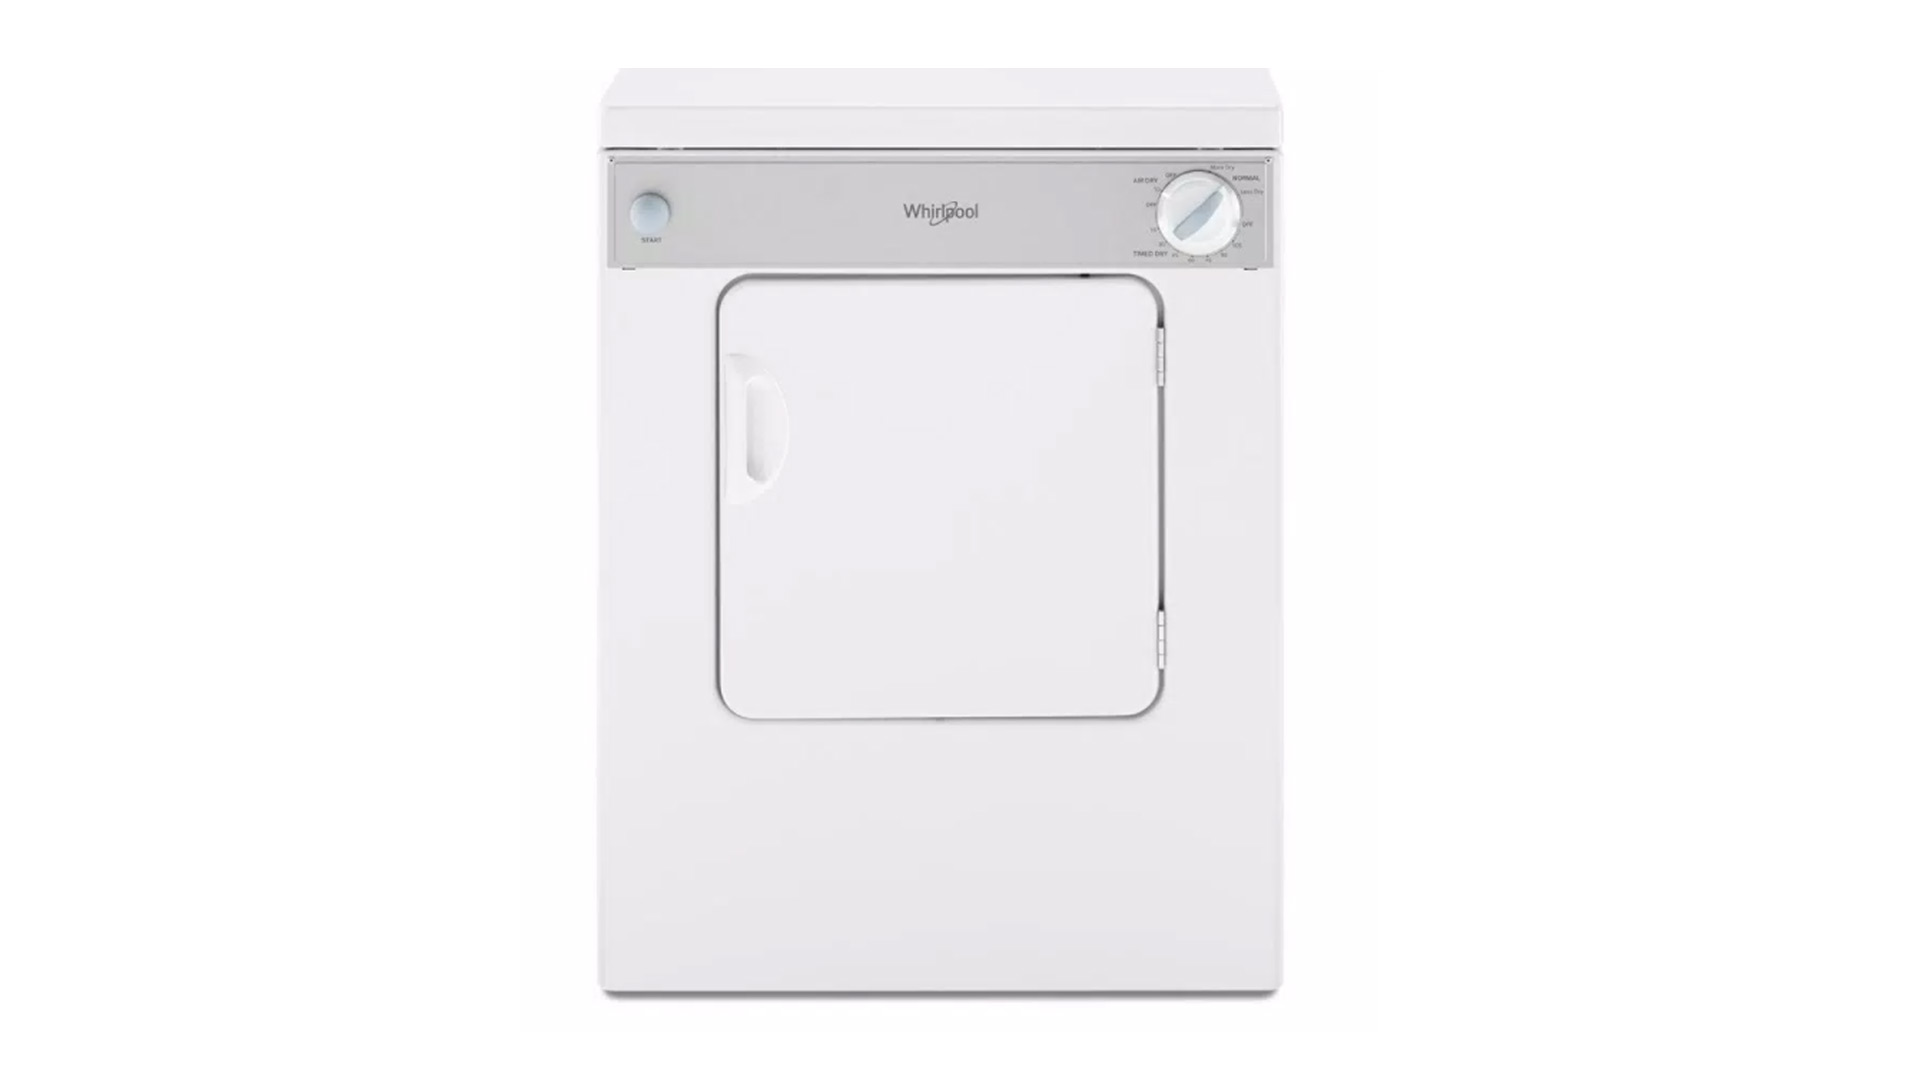 Whirlpool LDR3822PQ dryer review